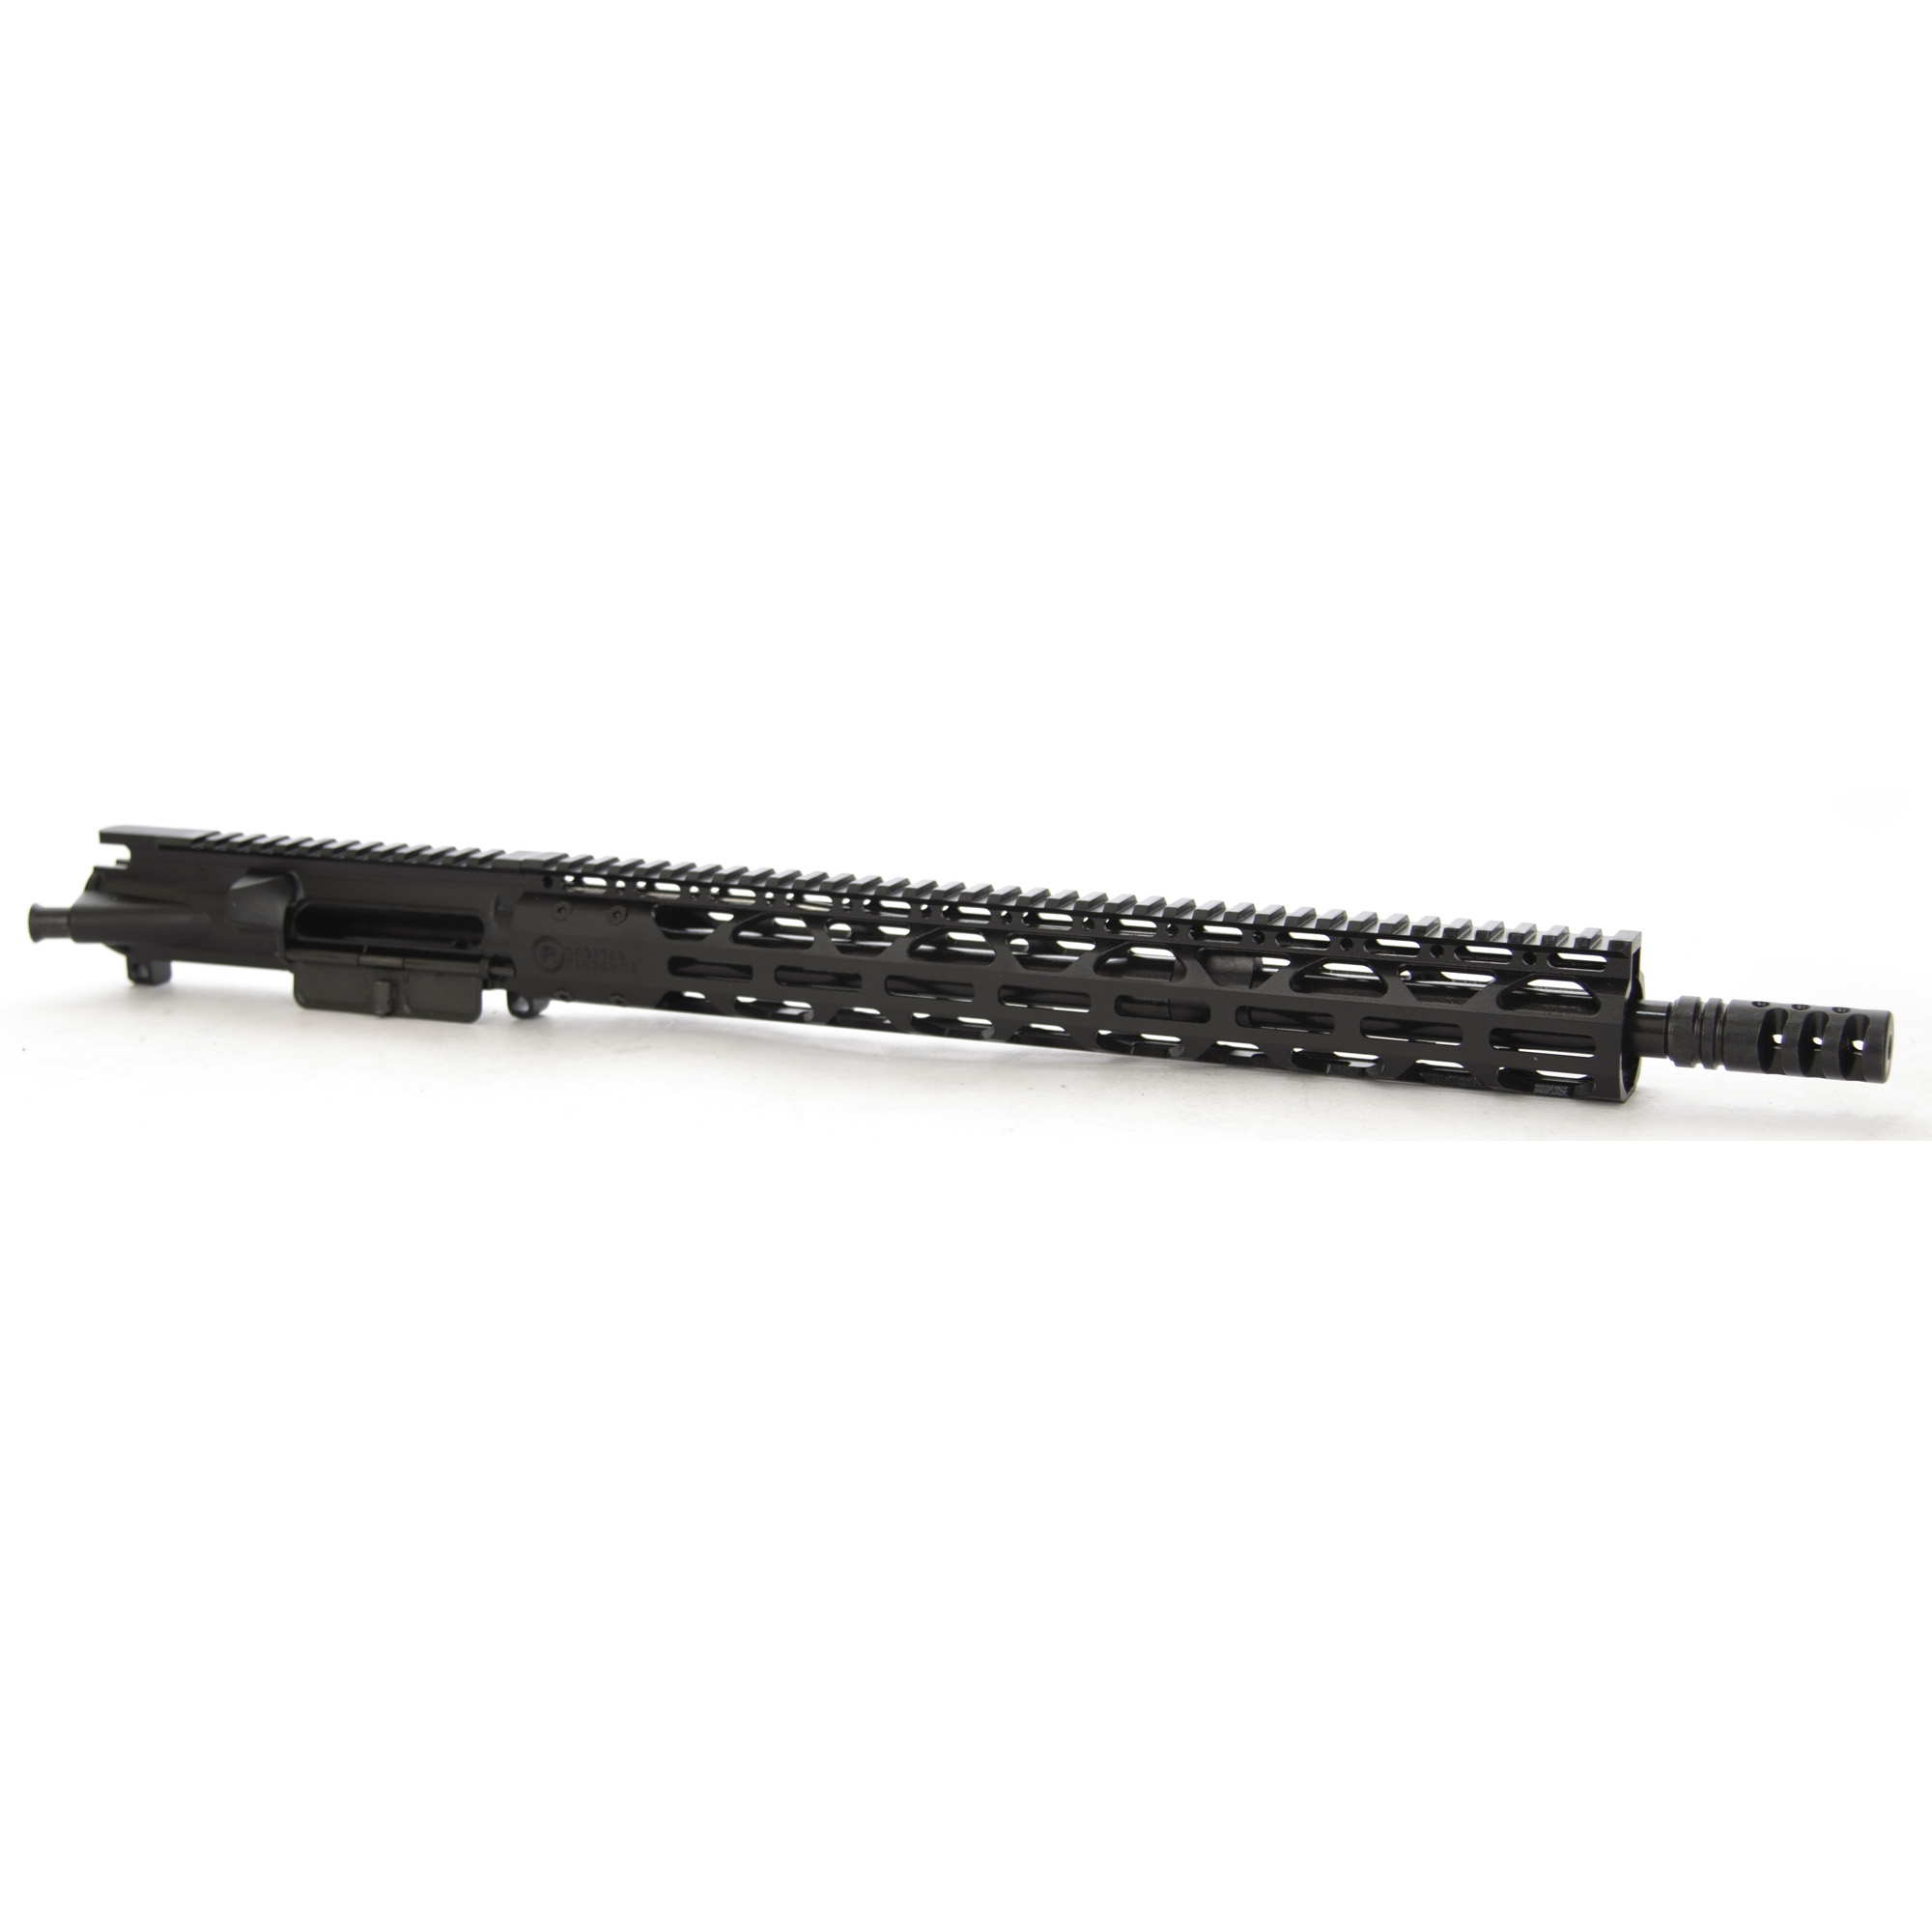 """The Radical Firearms 16"""" Socom profile 5.56mm is a complete MIL-STD upper ready to drop on any MIL-STD lower Receiver. Perfect for the novice or advanced shooter wanting to finish out that build and hit the range. Built with a 15"""" RPR free float rail system for increased accuracy and keeping your hands cool. No matter what your style of shooting is"""" Radical Firearms has you covered."""